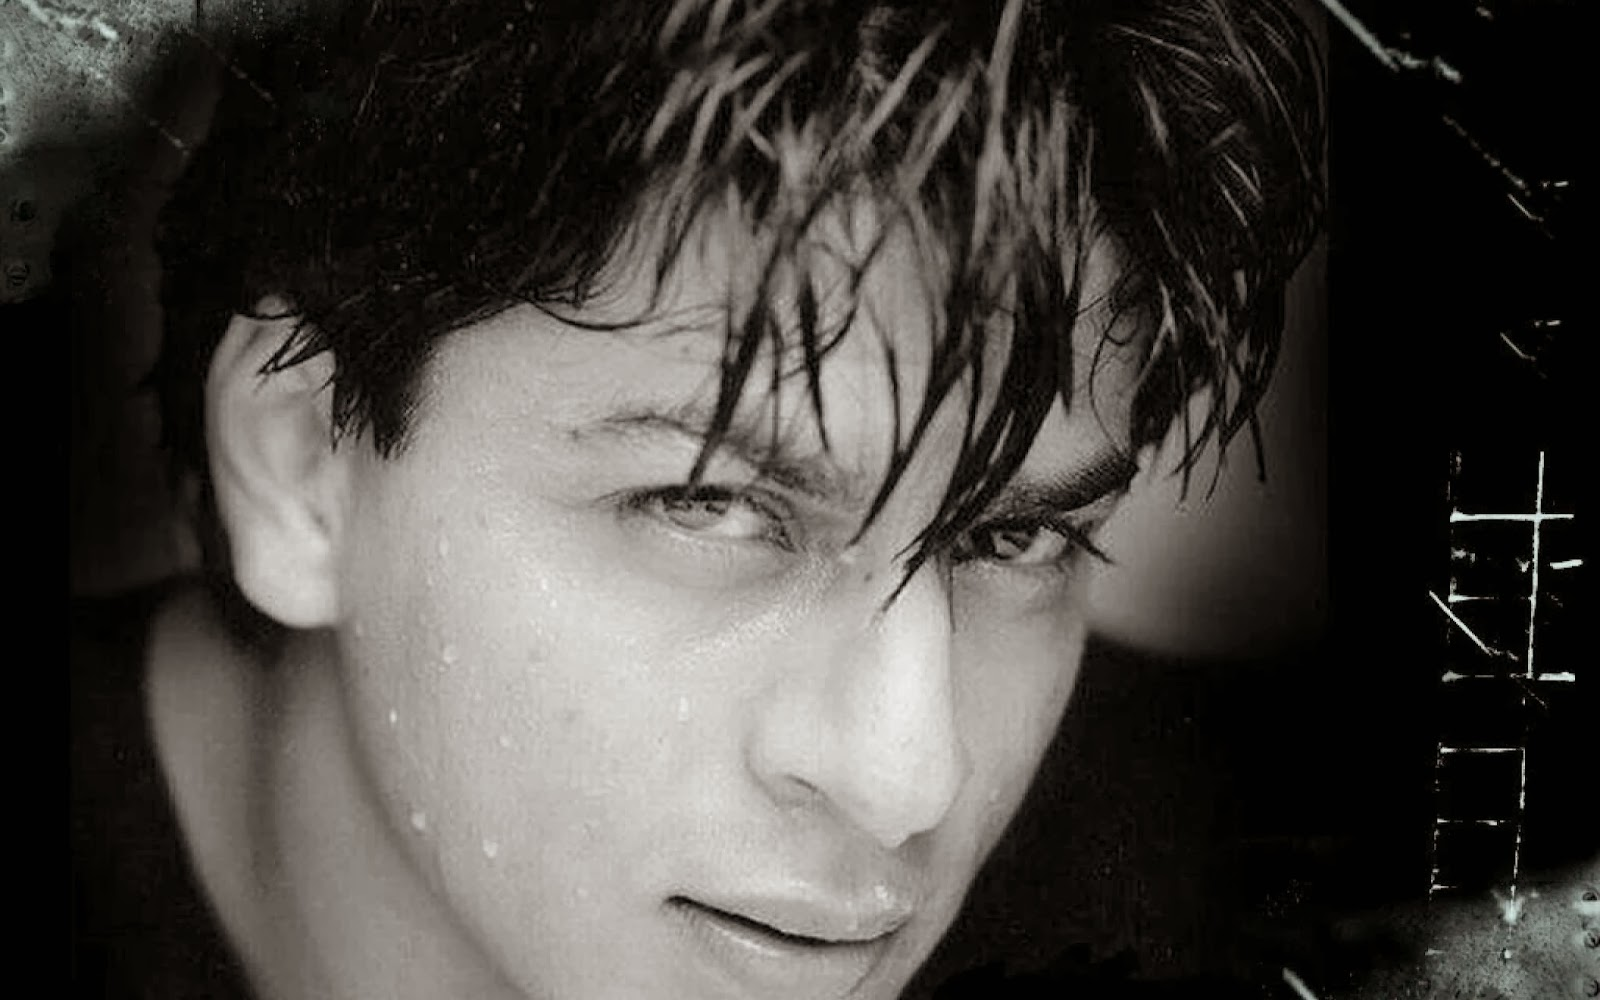 Hd wallpapers shah rukh khan hd wallpaper - Shahrukh khan cool wallpaper ...